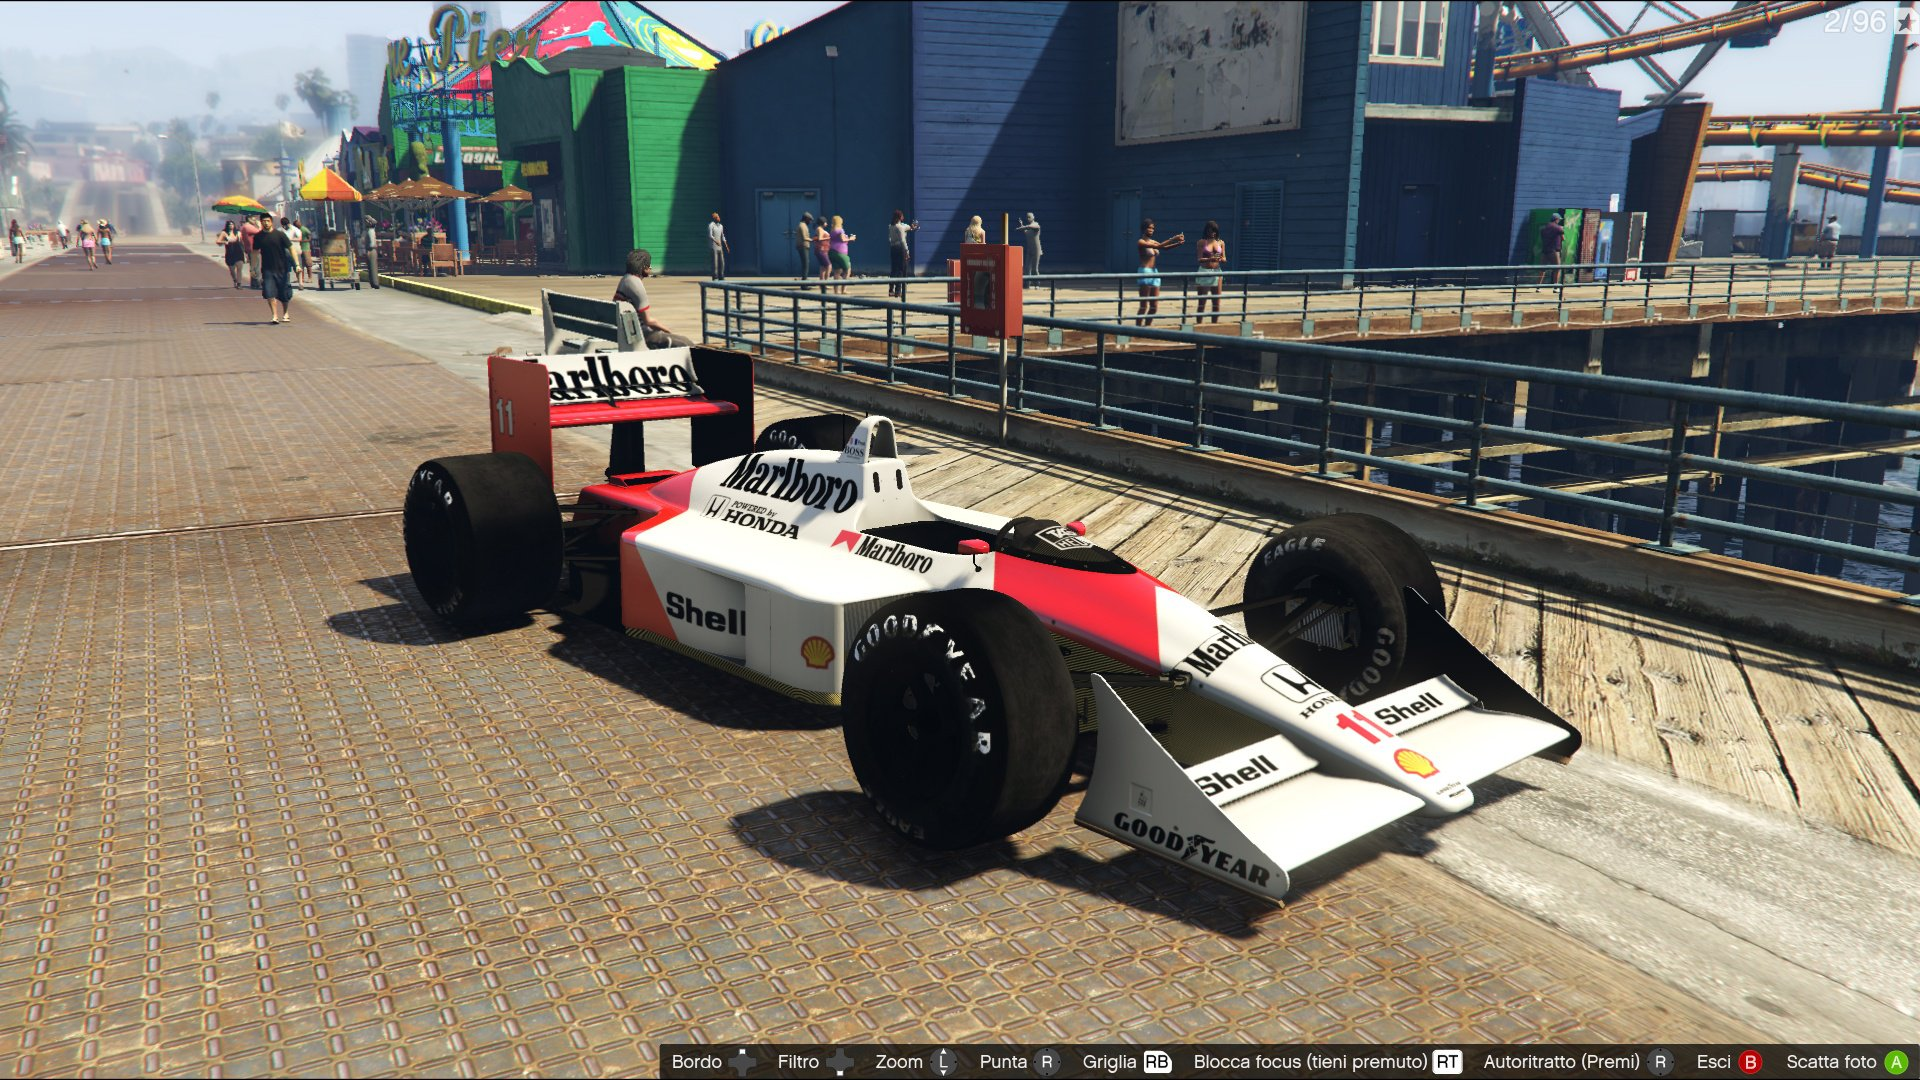 mclaren mp4 4 1988 vehicules pour gta v sur gta modding. Black Bedroom Furniture Sets. Home Design Ideas